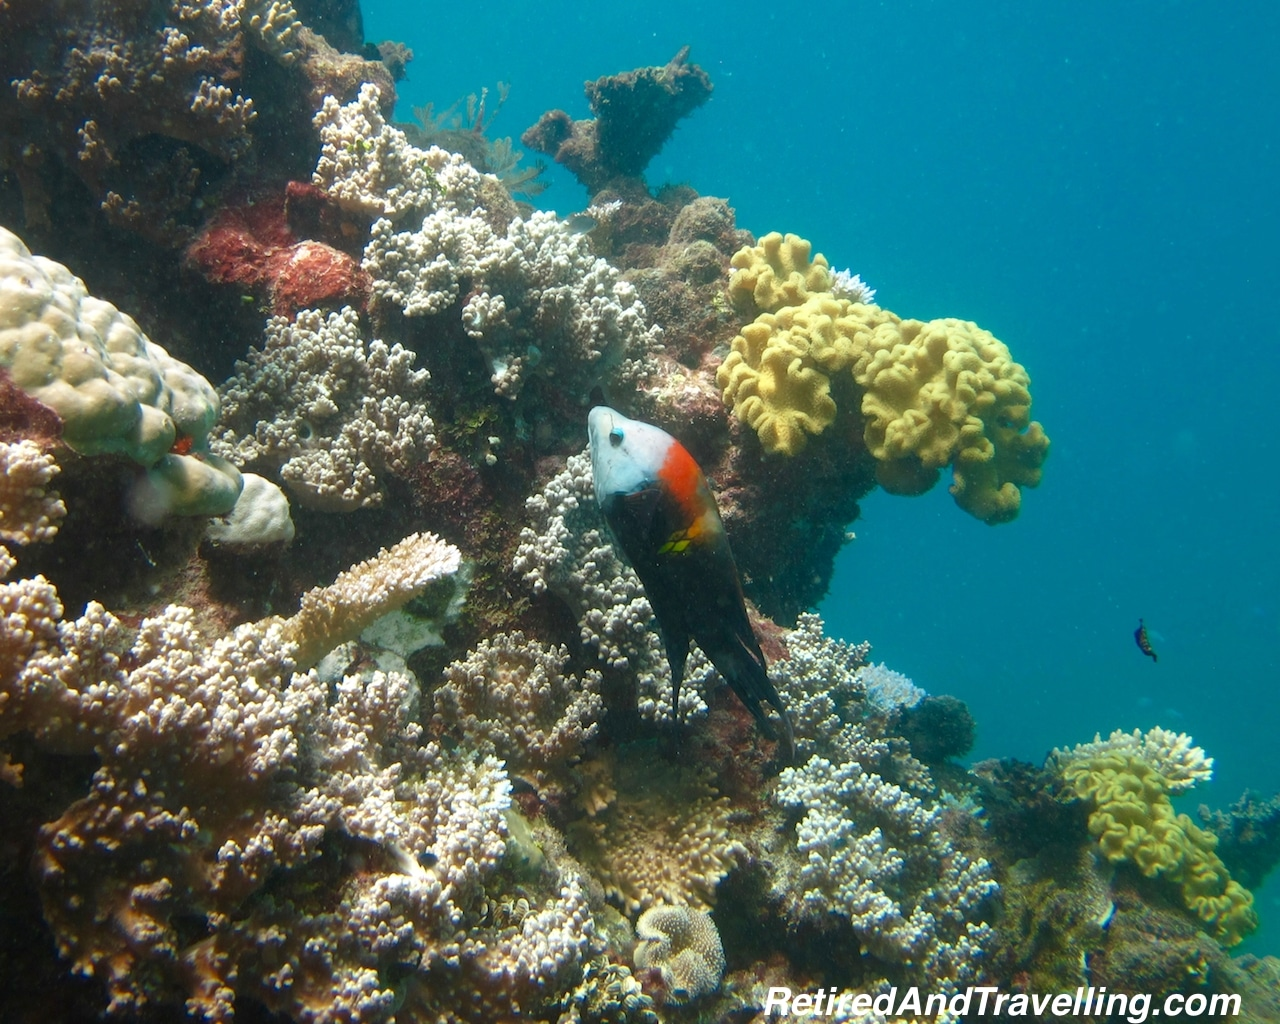 Scuba - Snorkel or Scuba the Great Barrier Reef.jpg